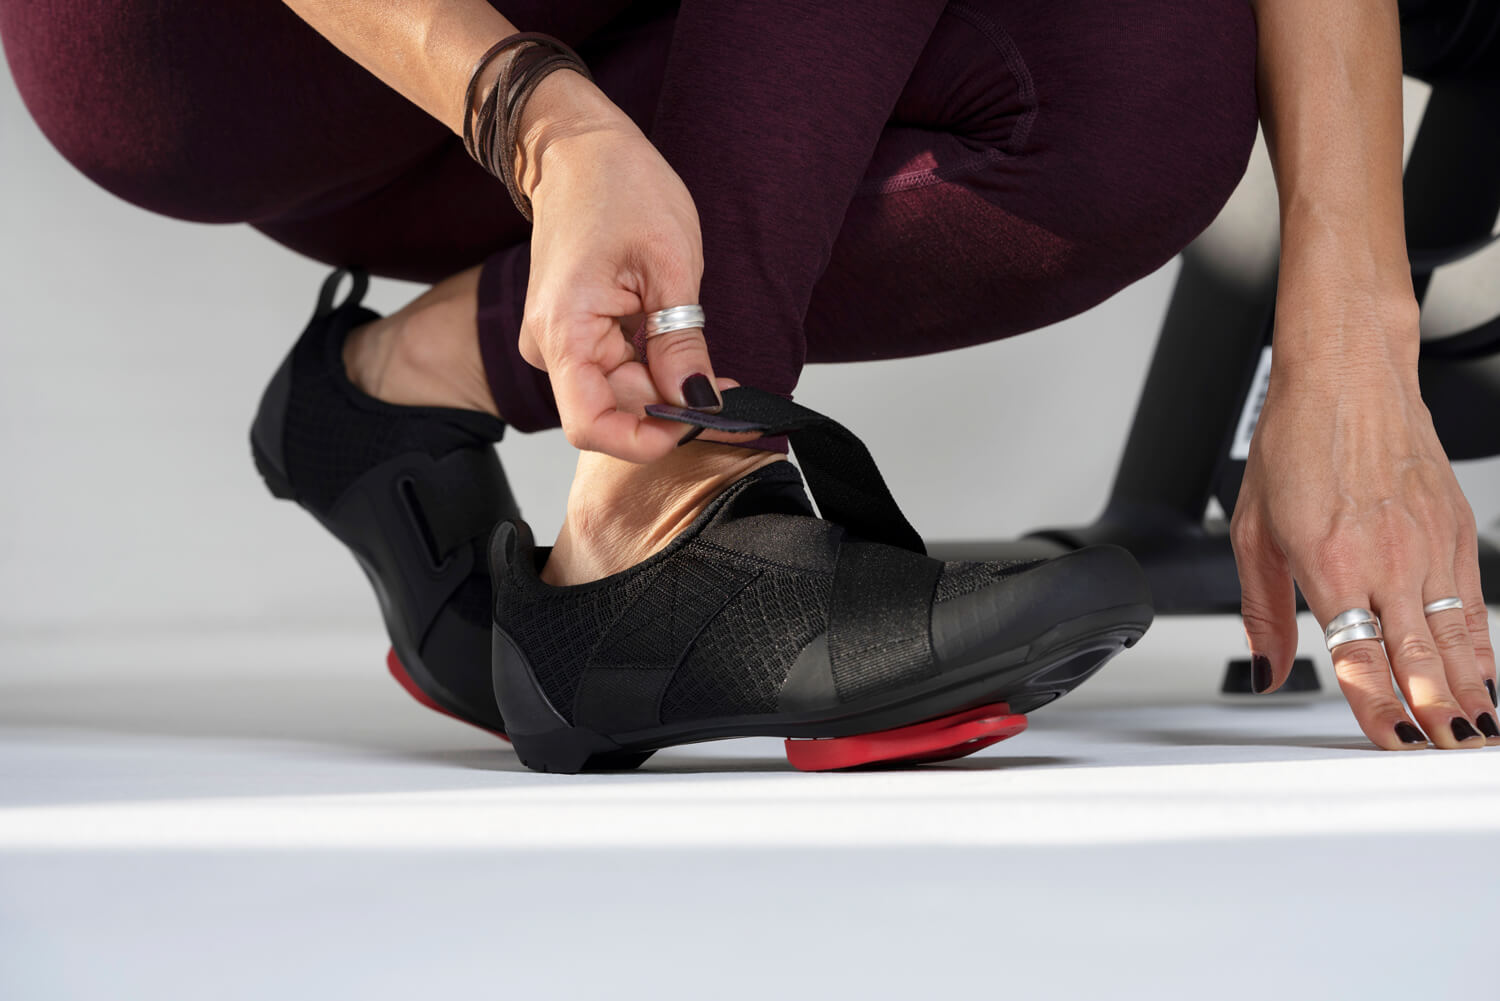 Shimano's IC1 Indoor Cycling shoe with Look Delta Cleats on a Peloton bike